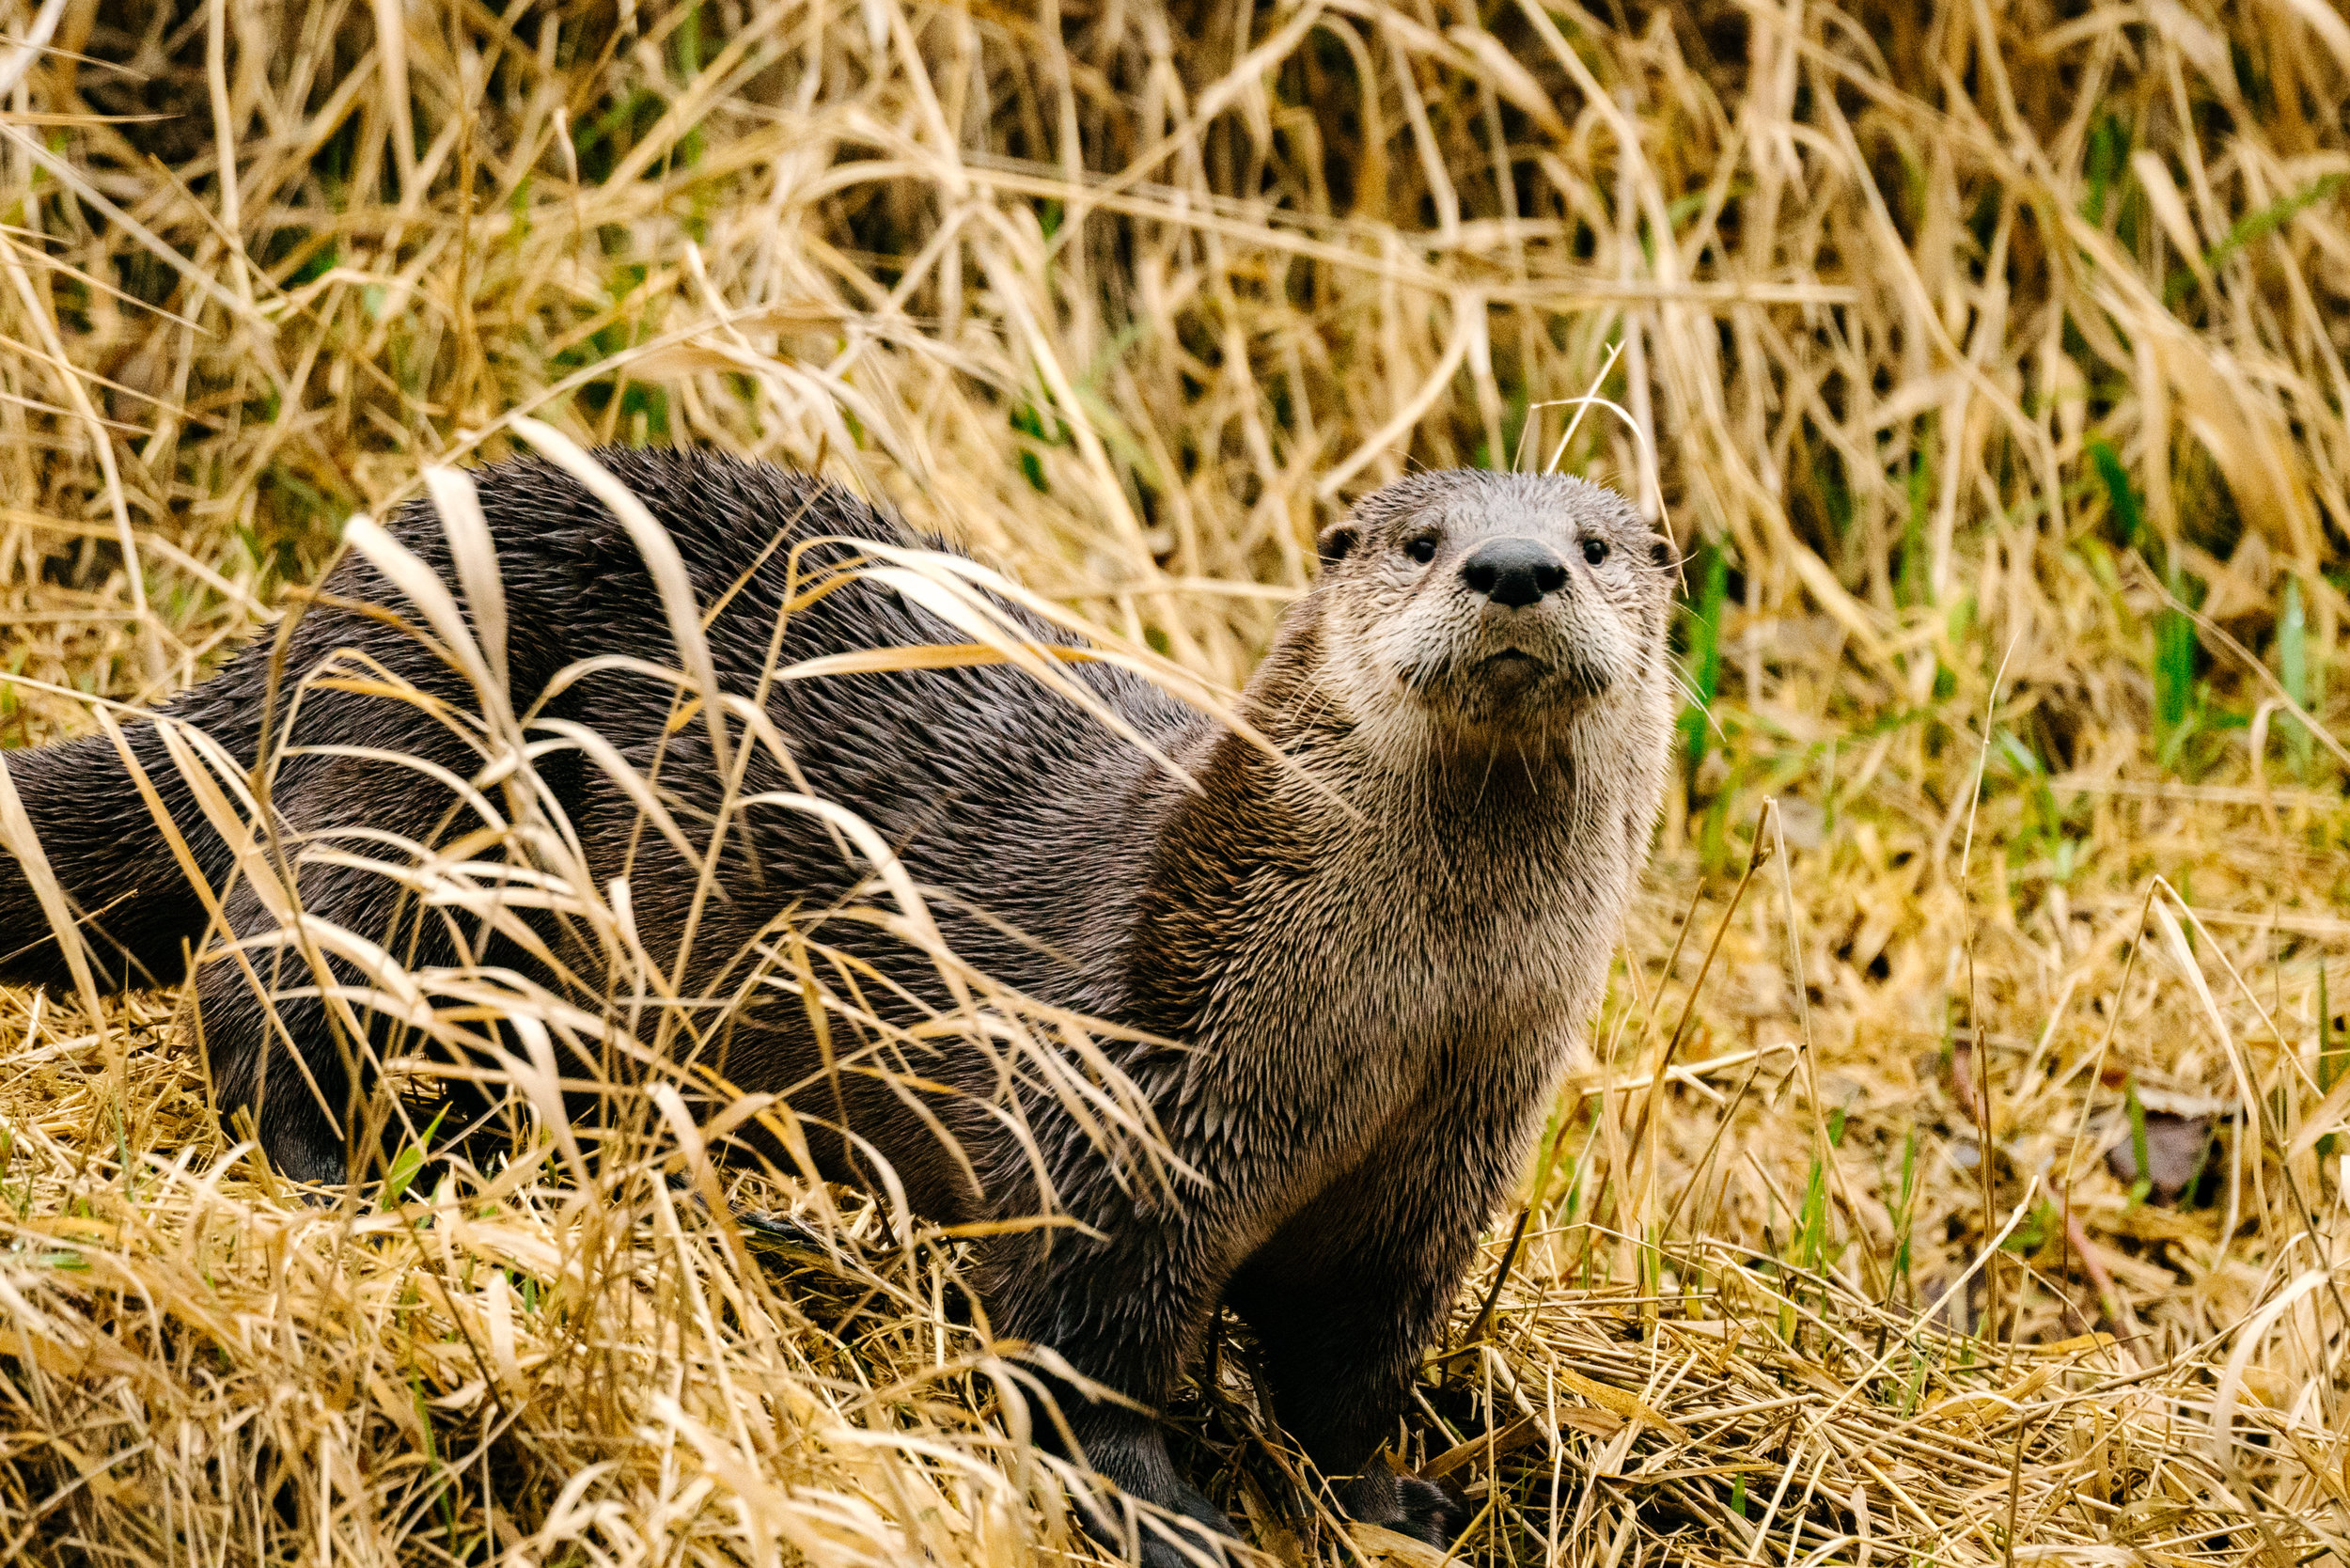 North American River Otter in the Sammamish River by Wildlife Photographer, Sara Montour Lewis